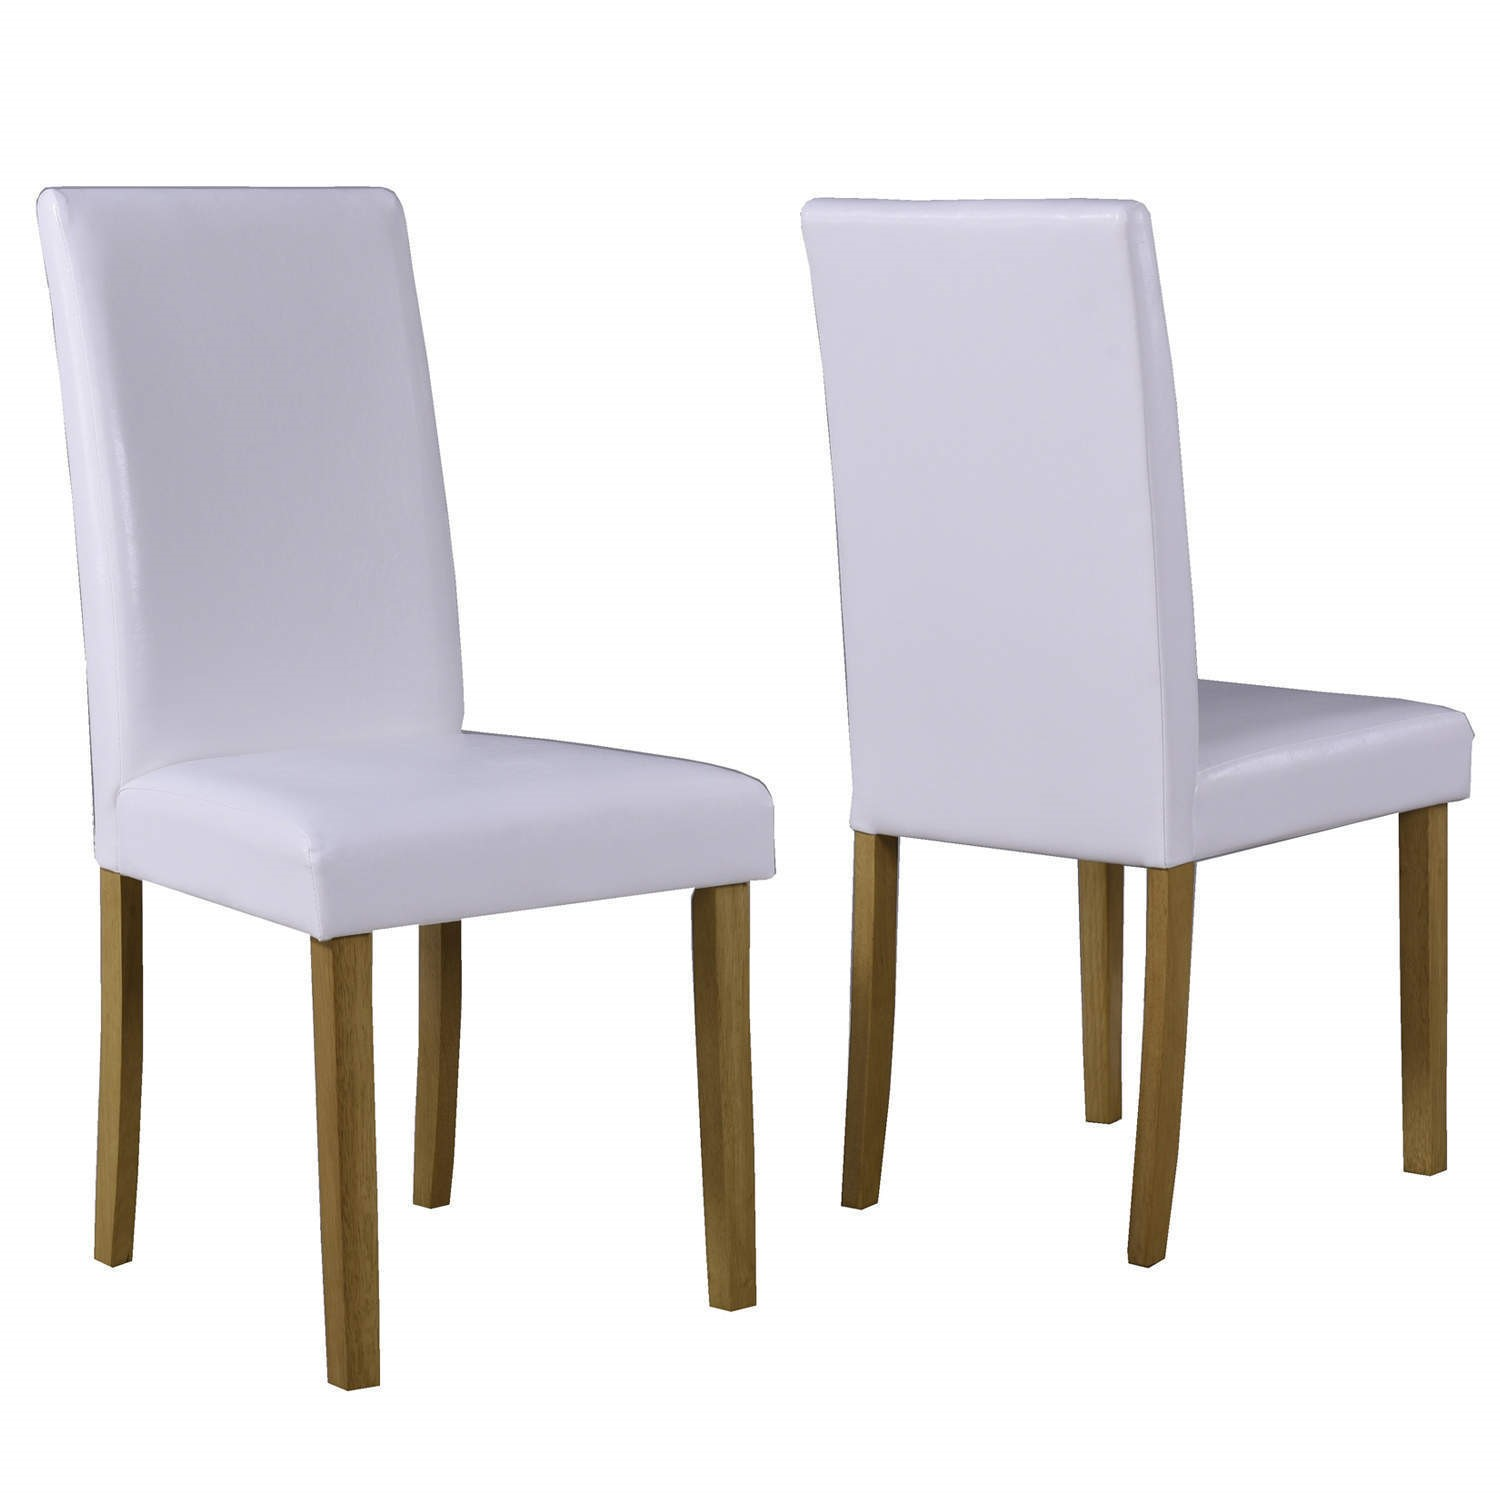 Modern Dining Room Chairs Faux Leather White Pair High